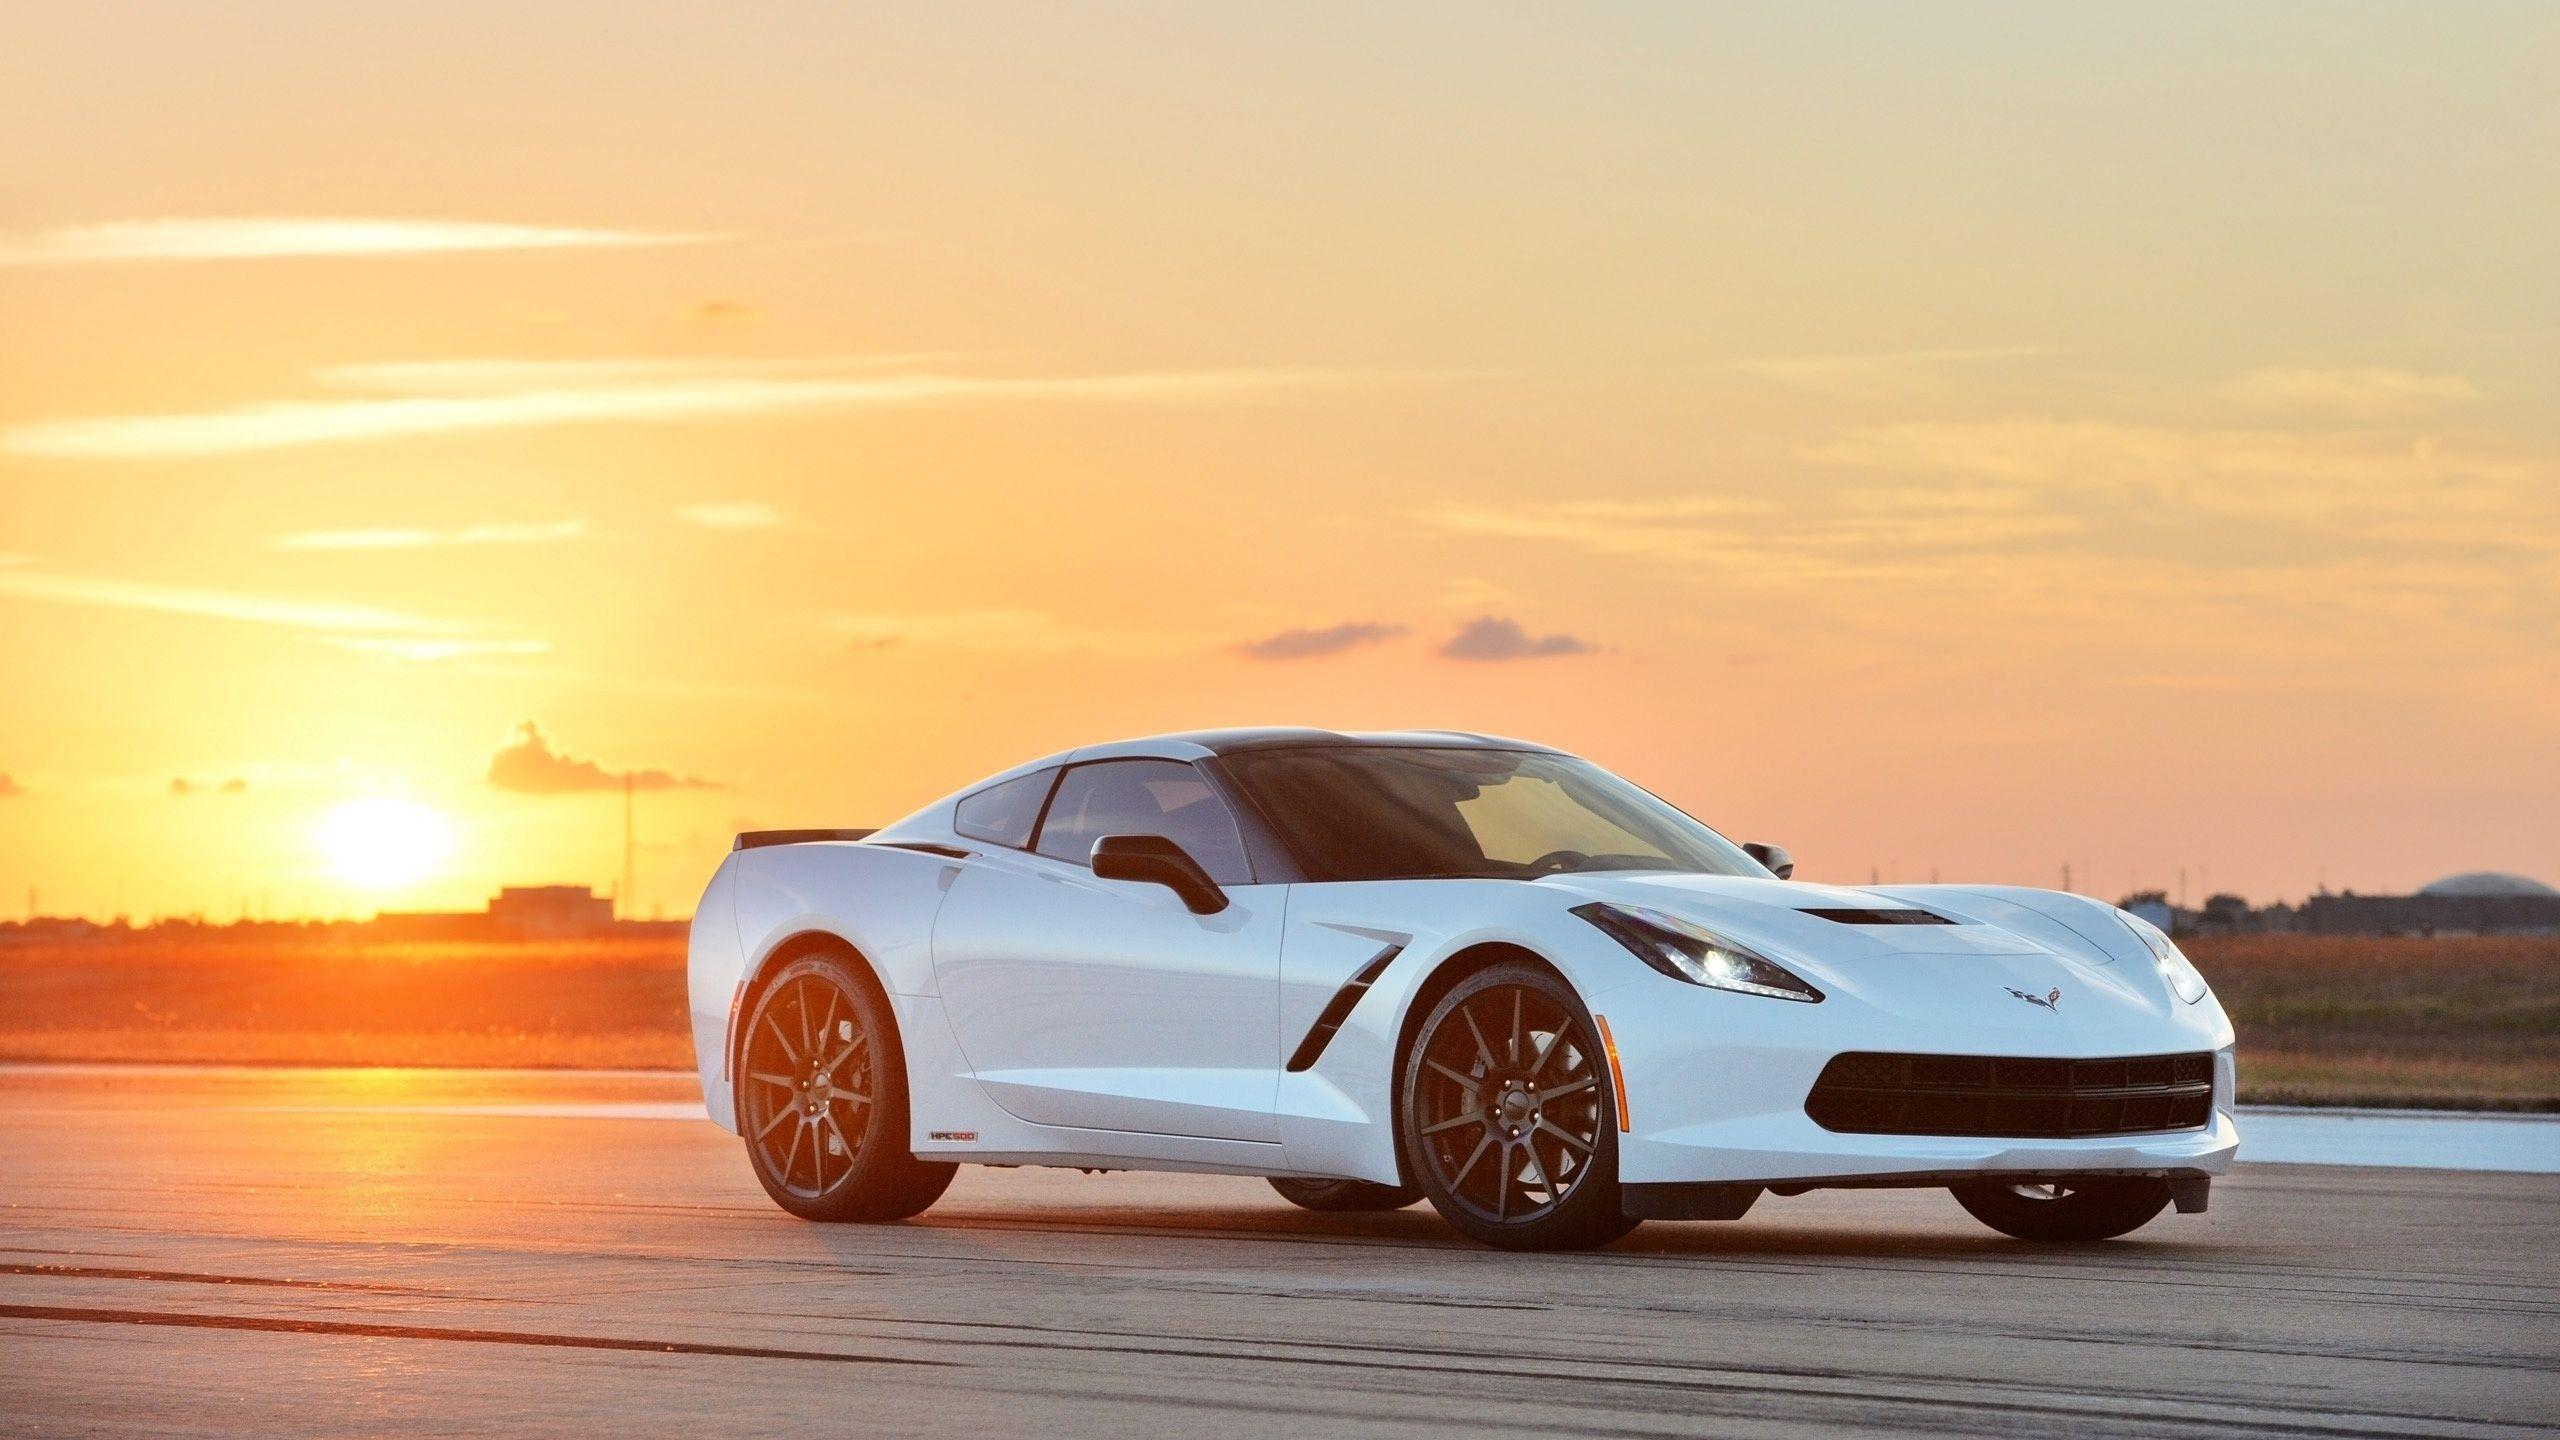 Corvette Stingray 2017 Wallpapers HD